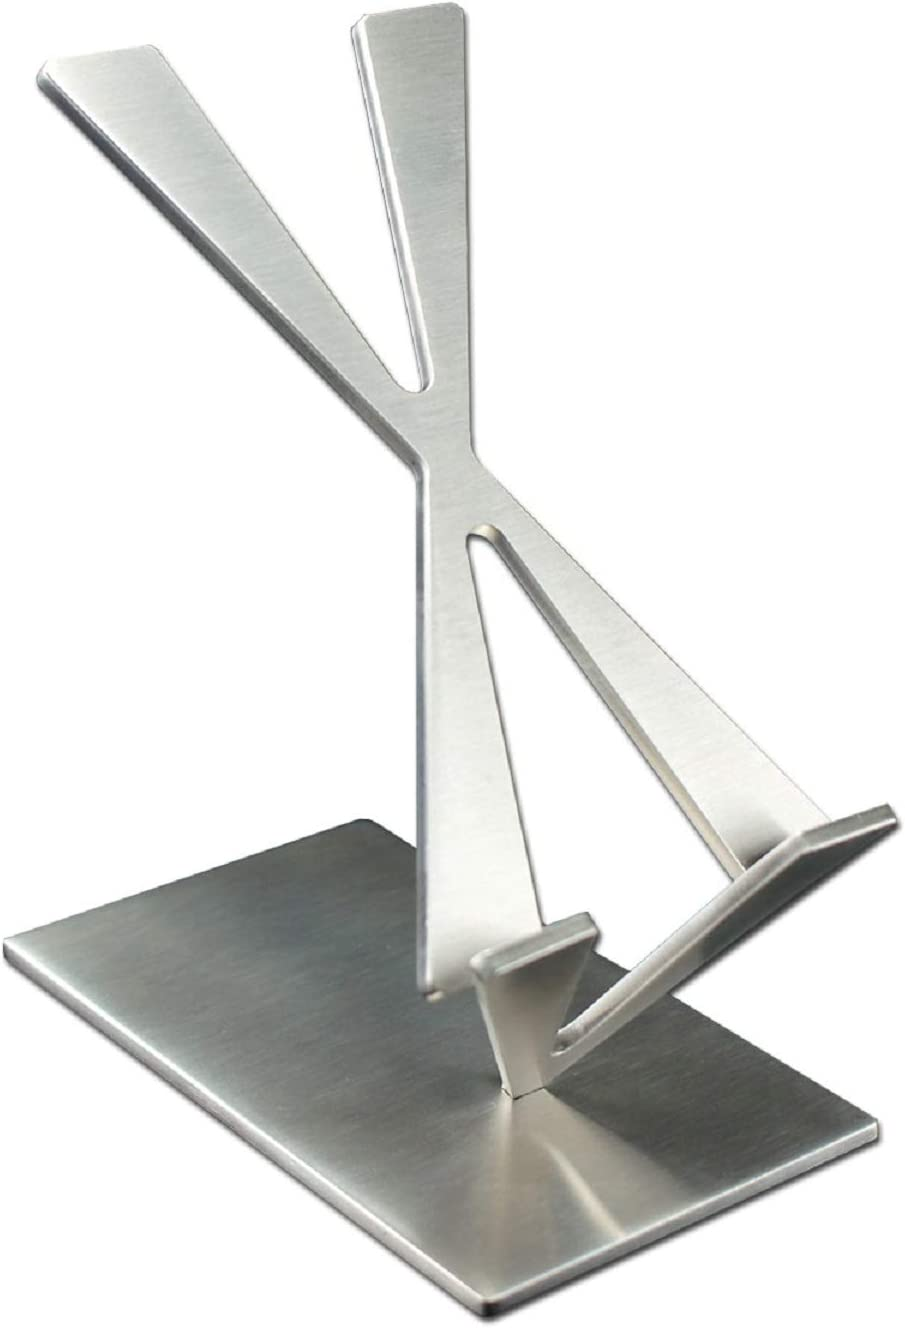 ArtsOnDesk Modern Art Desk iPhone Stand St204 Stainless Steel Satin Finish Patent Registered -- Especially Designed for Typing Compatible with all iPhones Google Pixel Samsung Mobile Ipad Perfect Gift